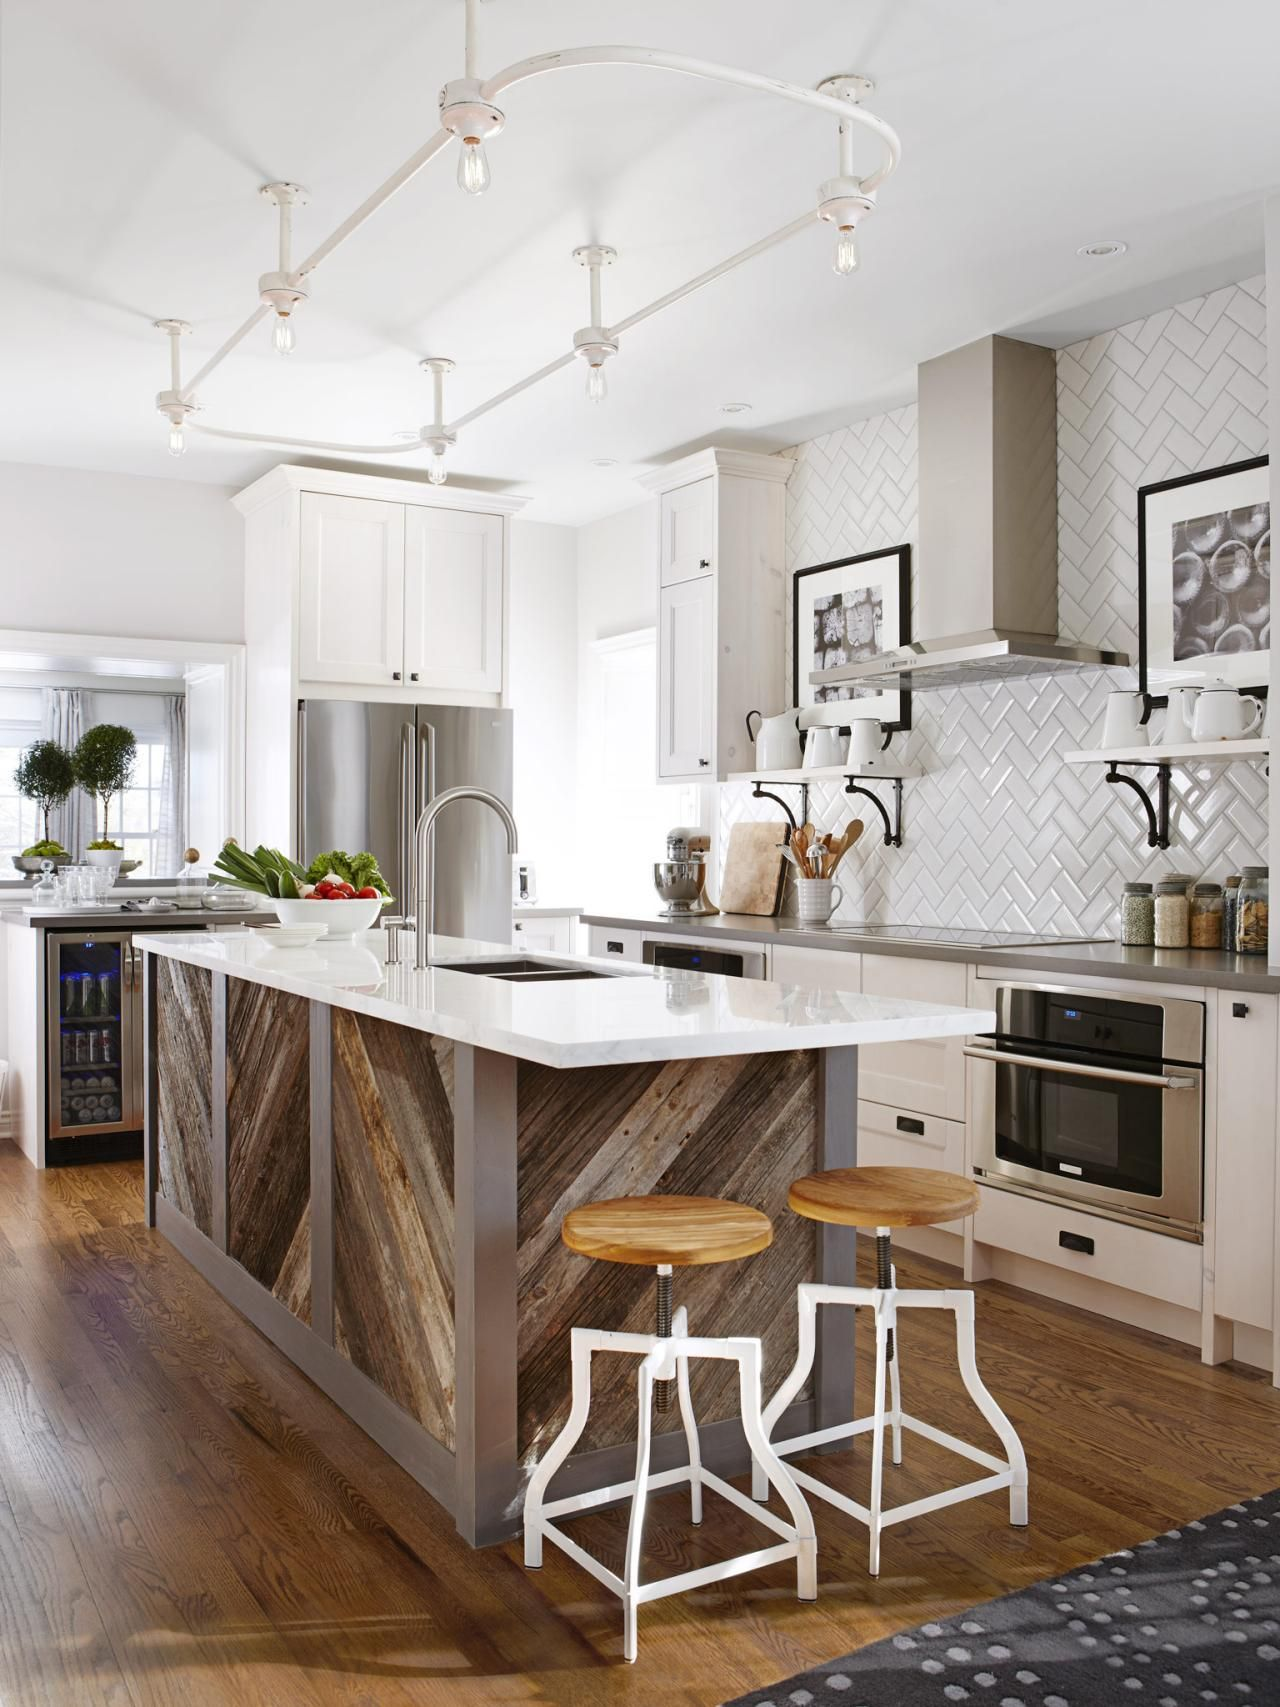 Interesting use of texture under the counter. Coo top is